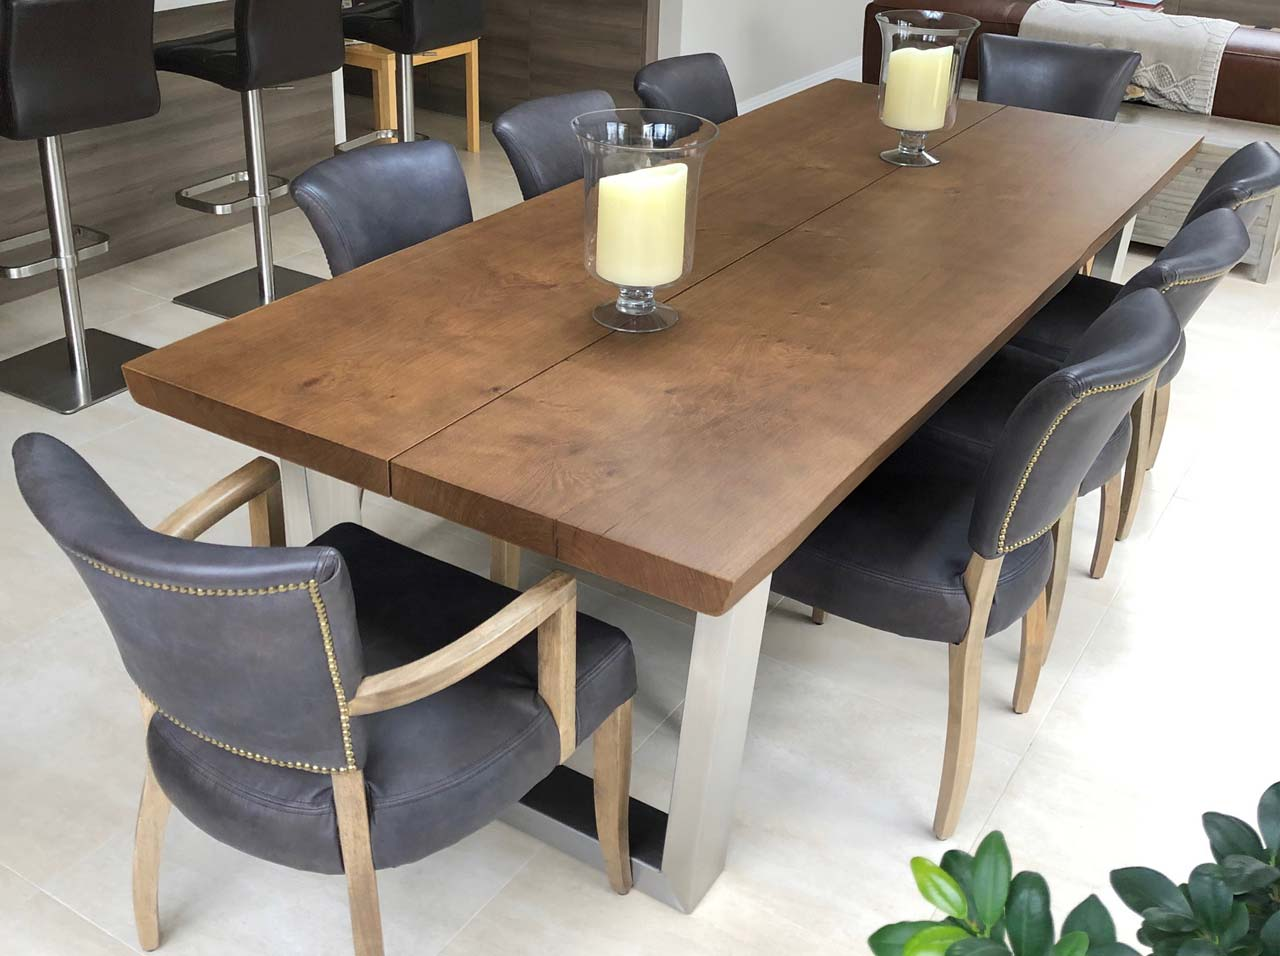 Exterior Balcony Ceiling Designs, Live Edge Dining Tables Made In The Uk Abacus Tables